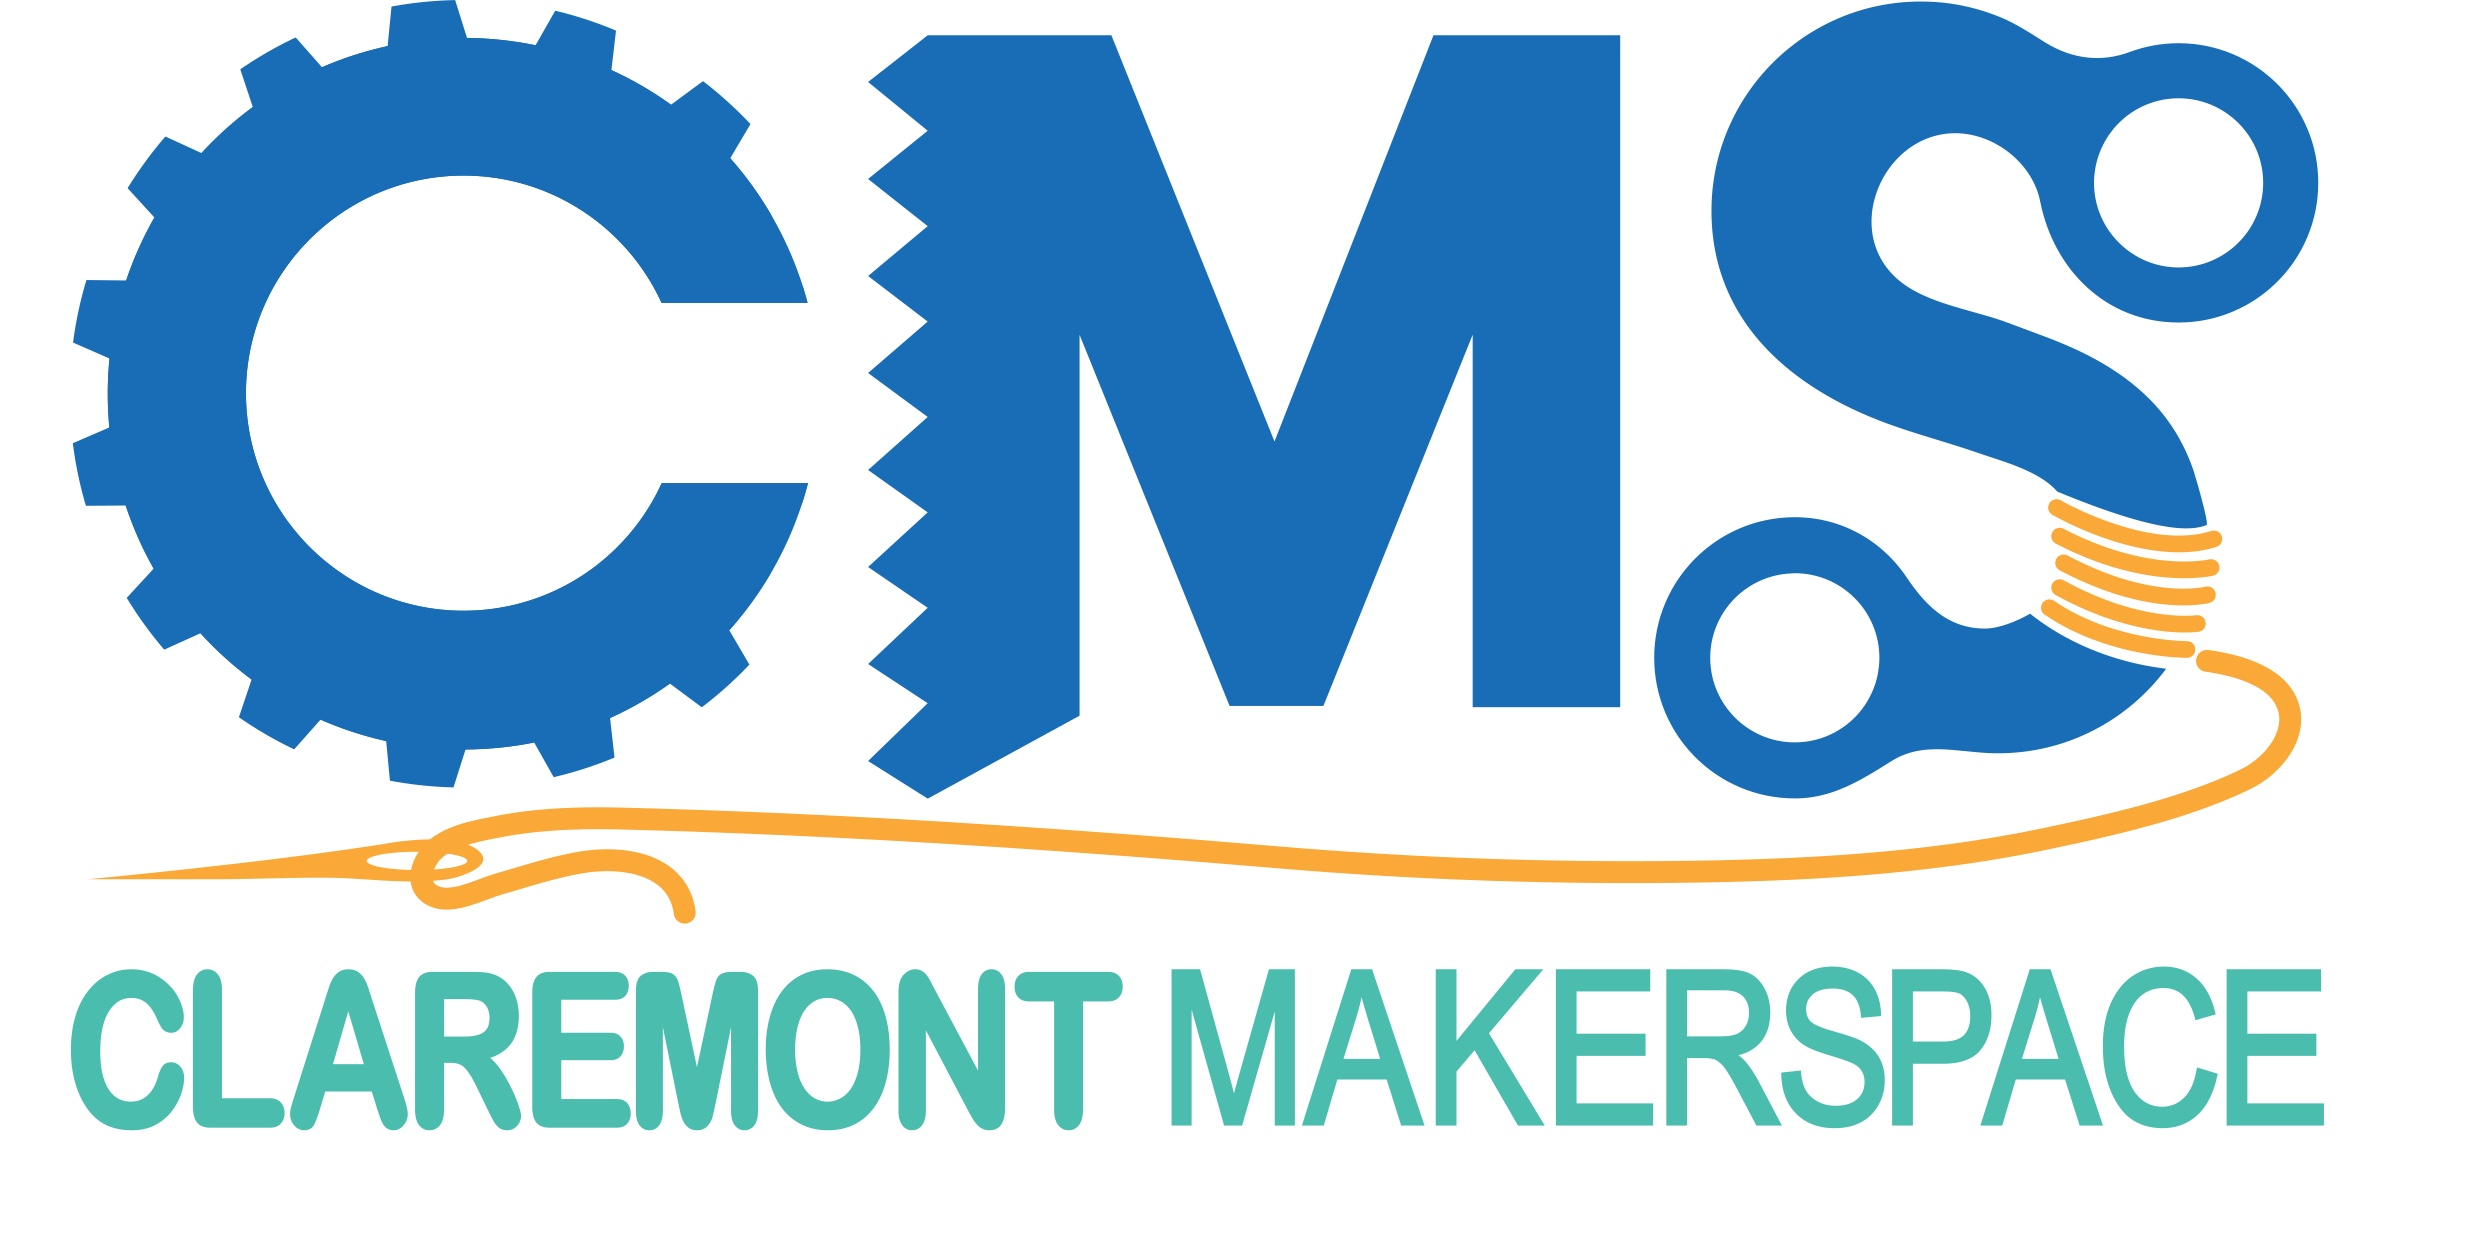 Claremont MakerSpace to Host Grand Opening